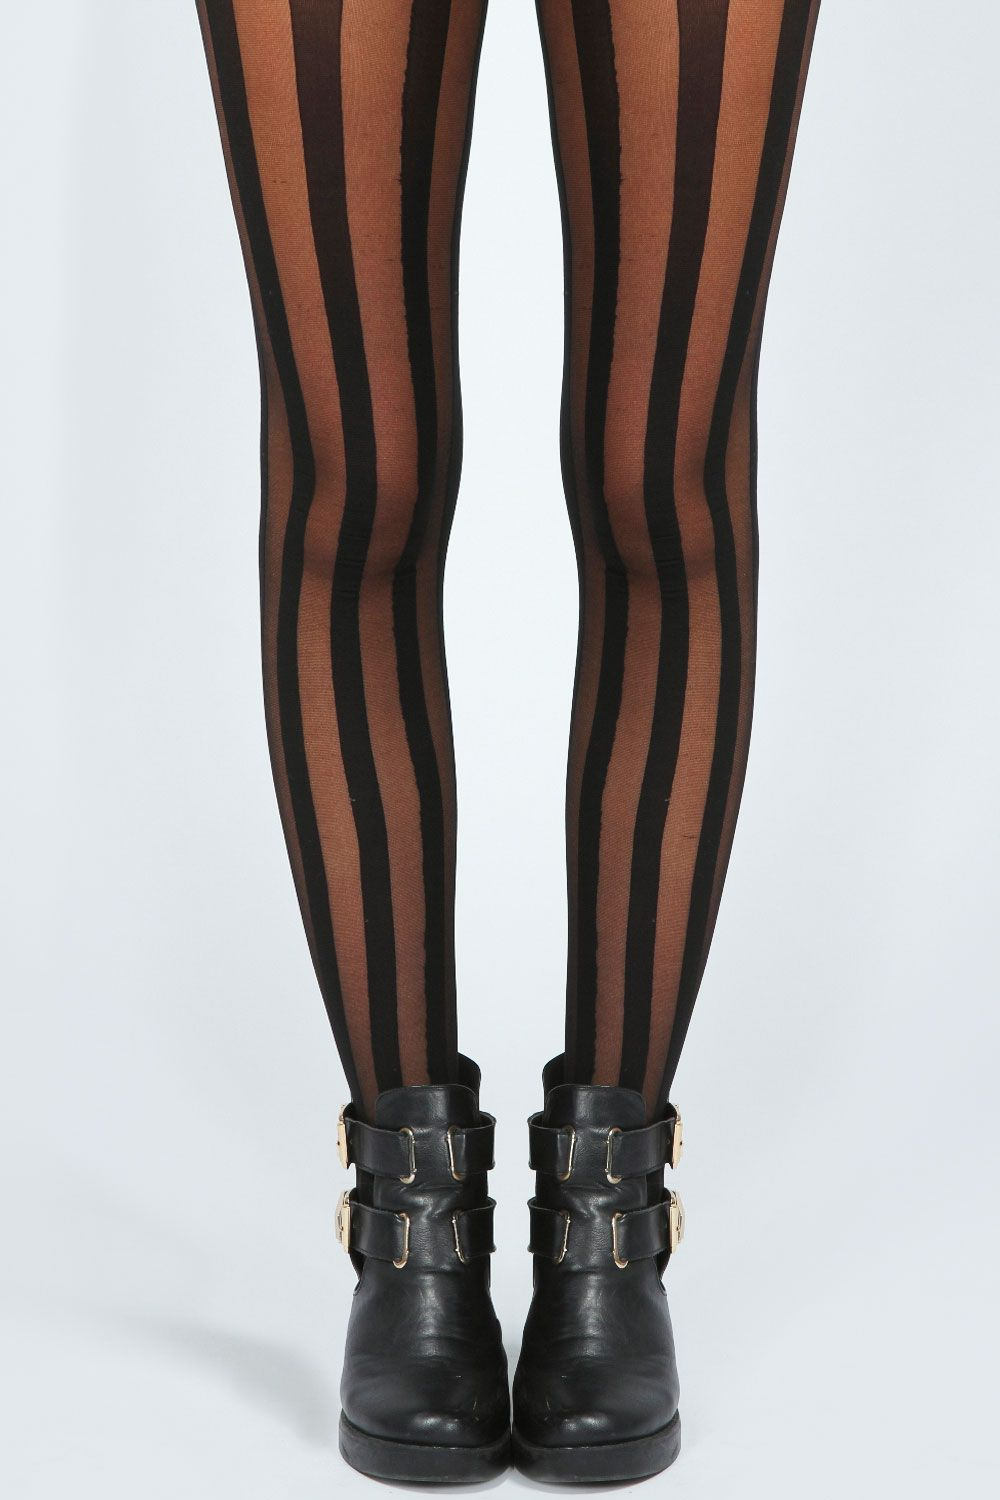 7afd0afe37a0e1 Steampunk Tights, Stockings, Leggings, Socks in 2019 | Steampunk ...